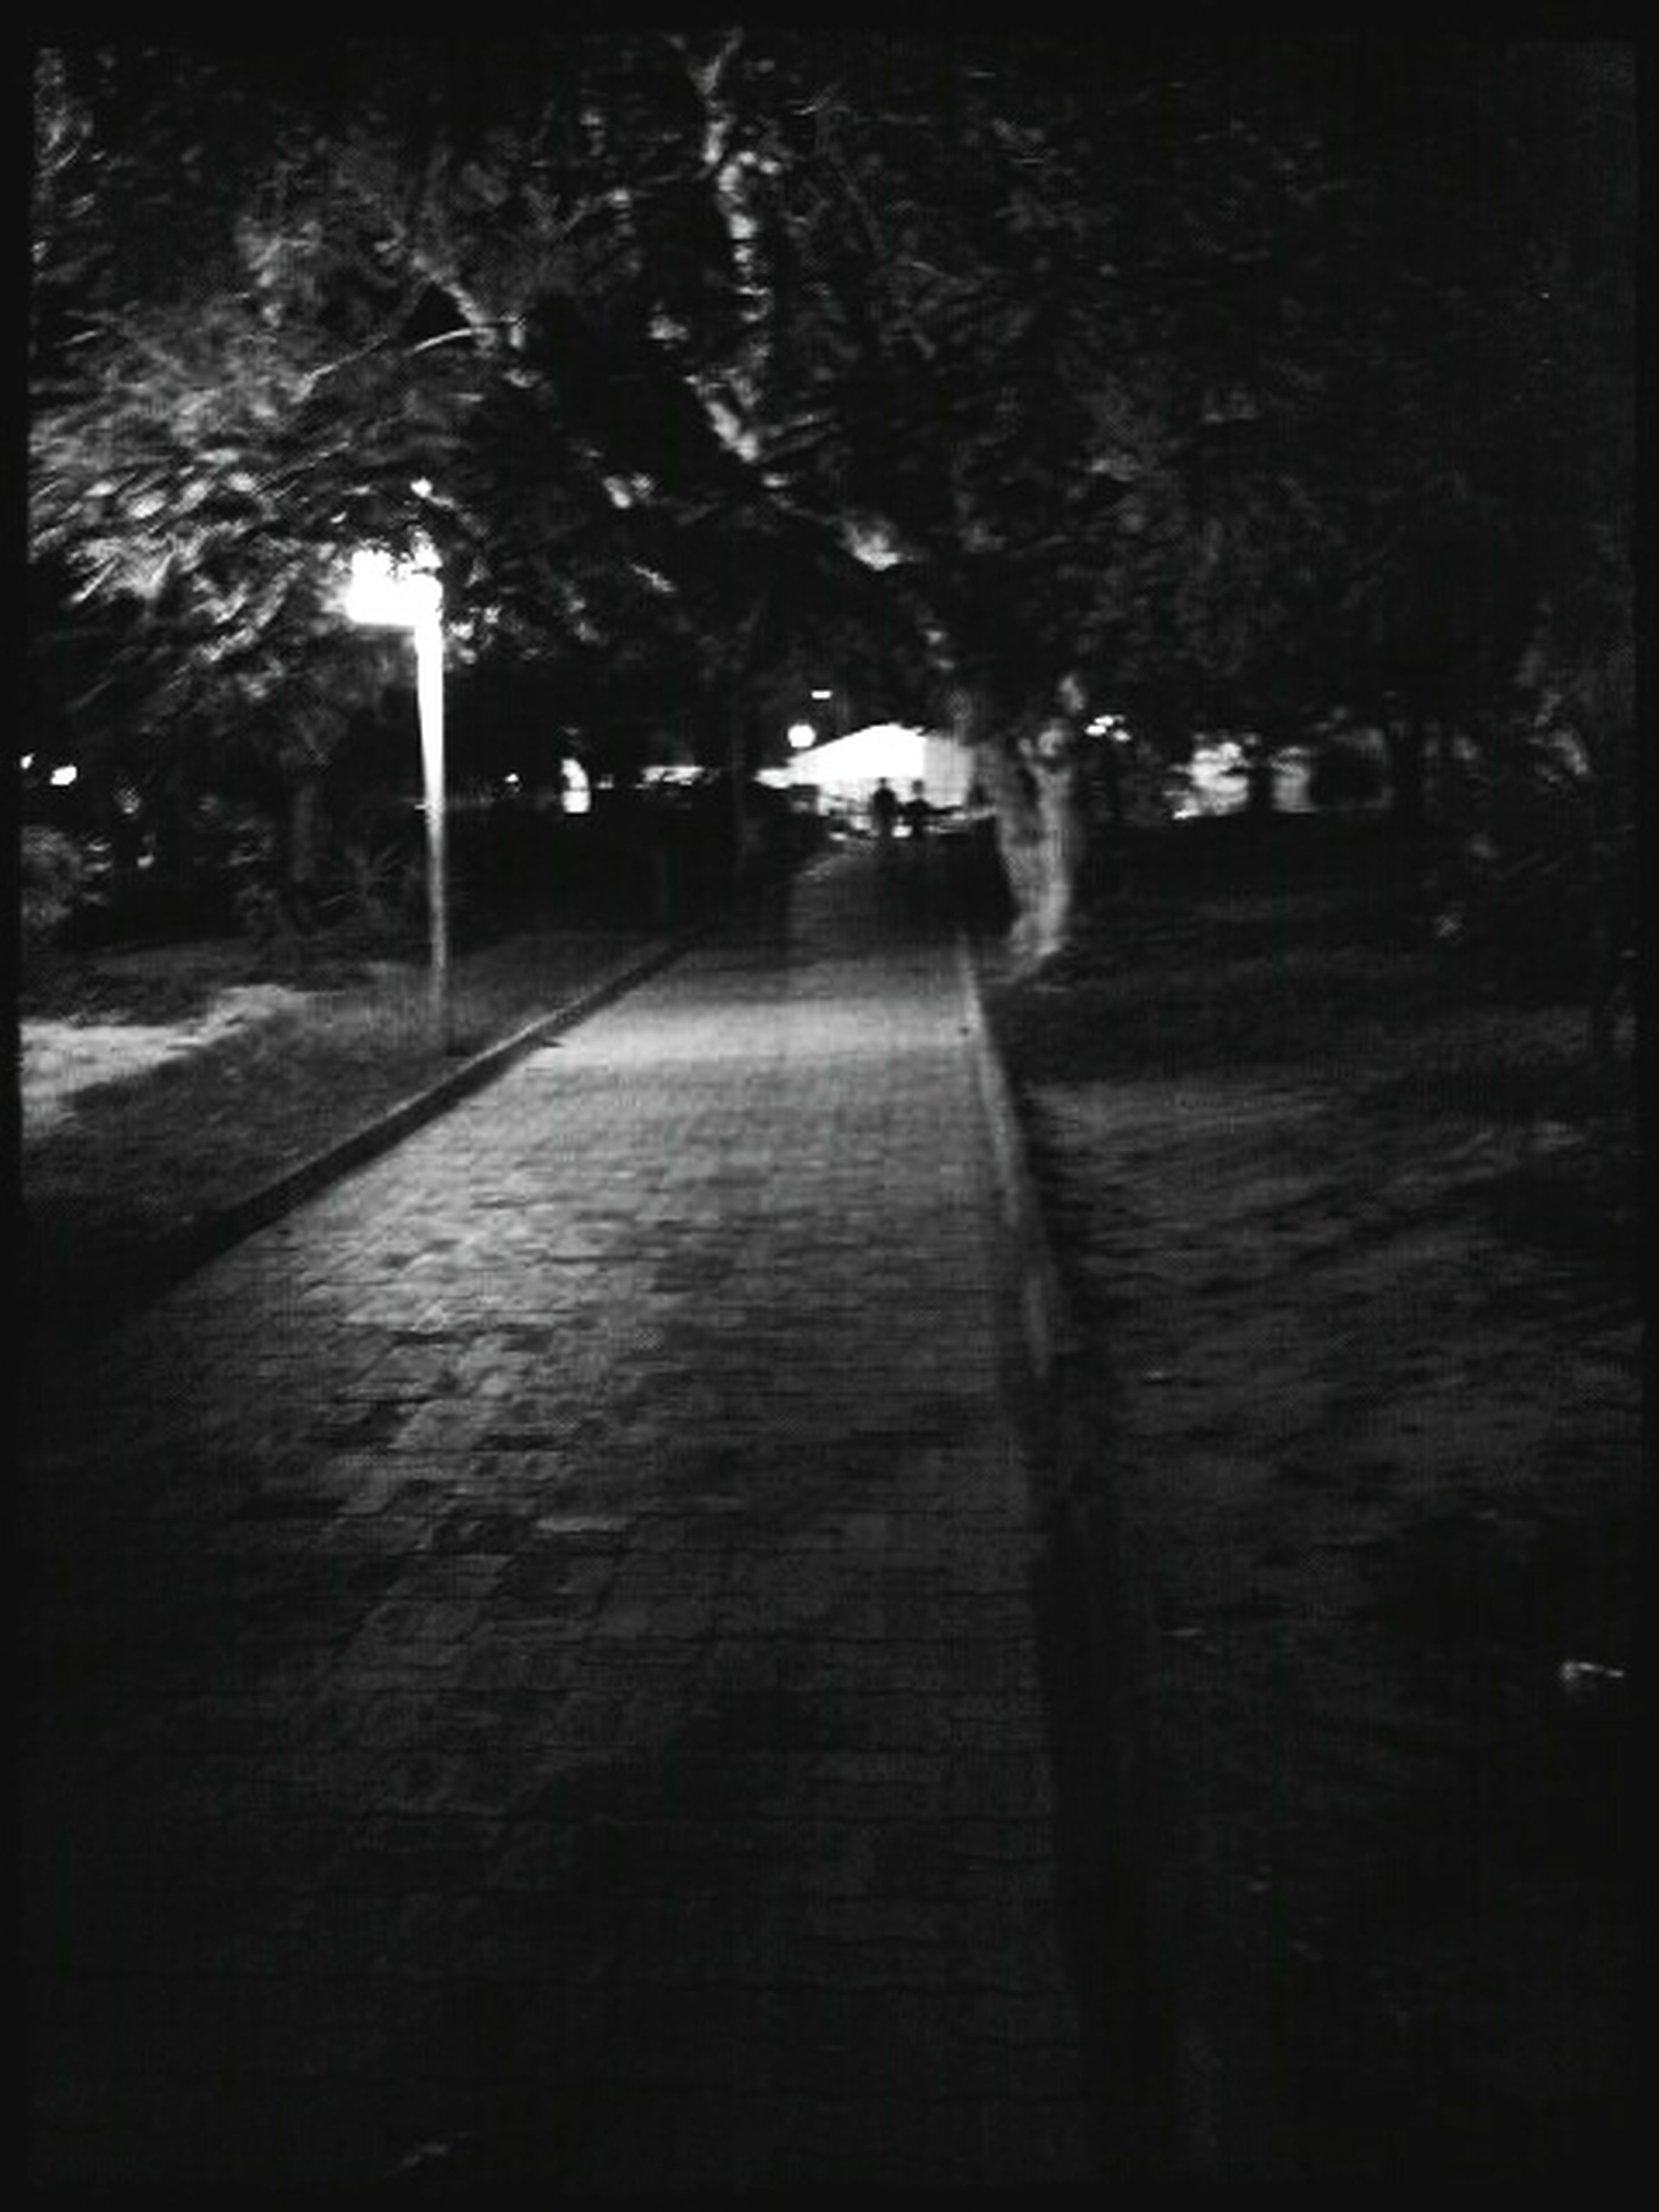 the way forward, tree, transfer print, auto post production filter, diminishing perspective, night, footpath, walkway, empty, narrow, street, growth, vanishing point, sunlight, shadow, pathway, outdoors, road, nature, sidewalk